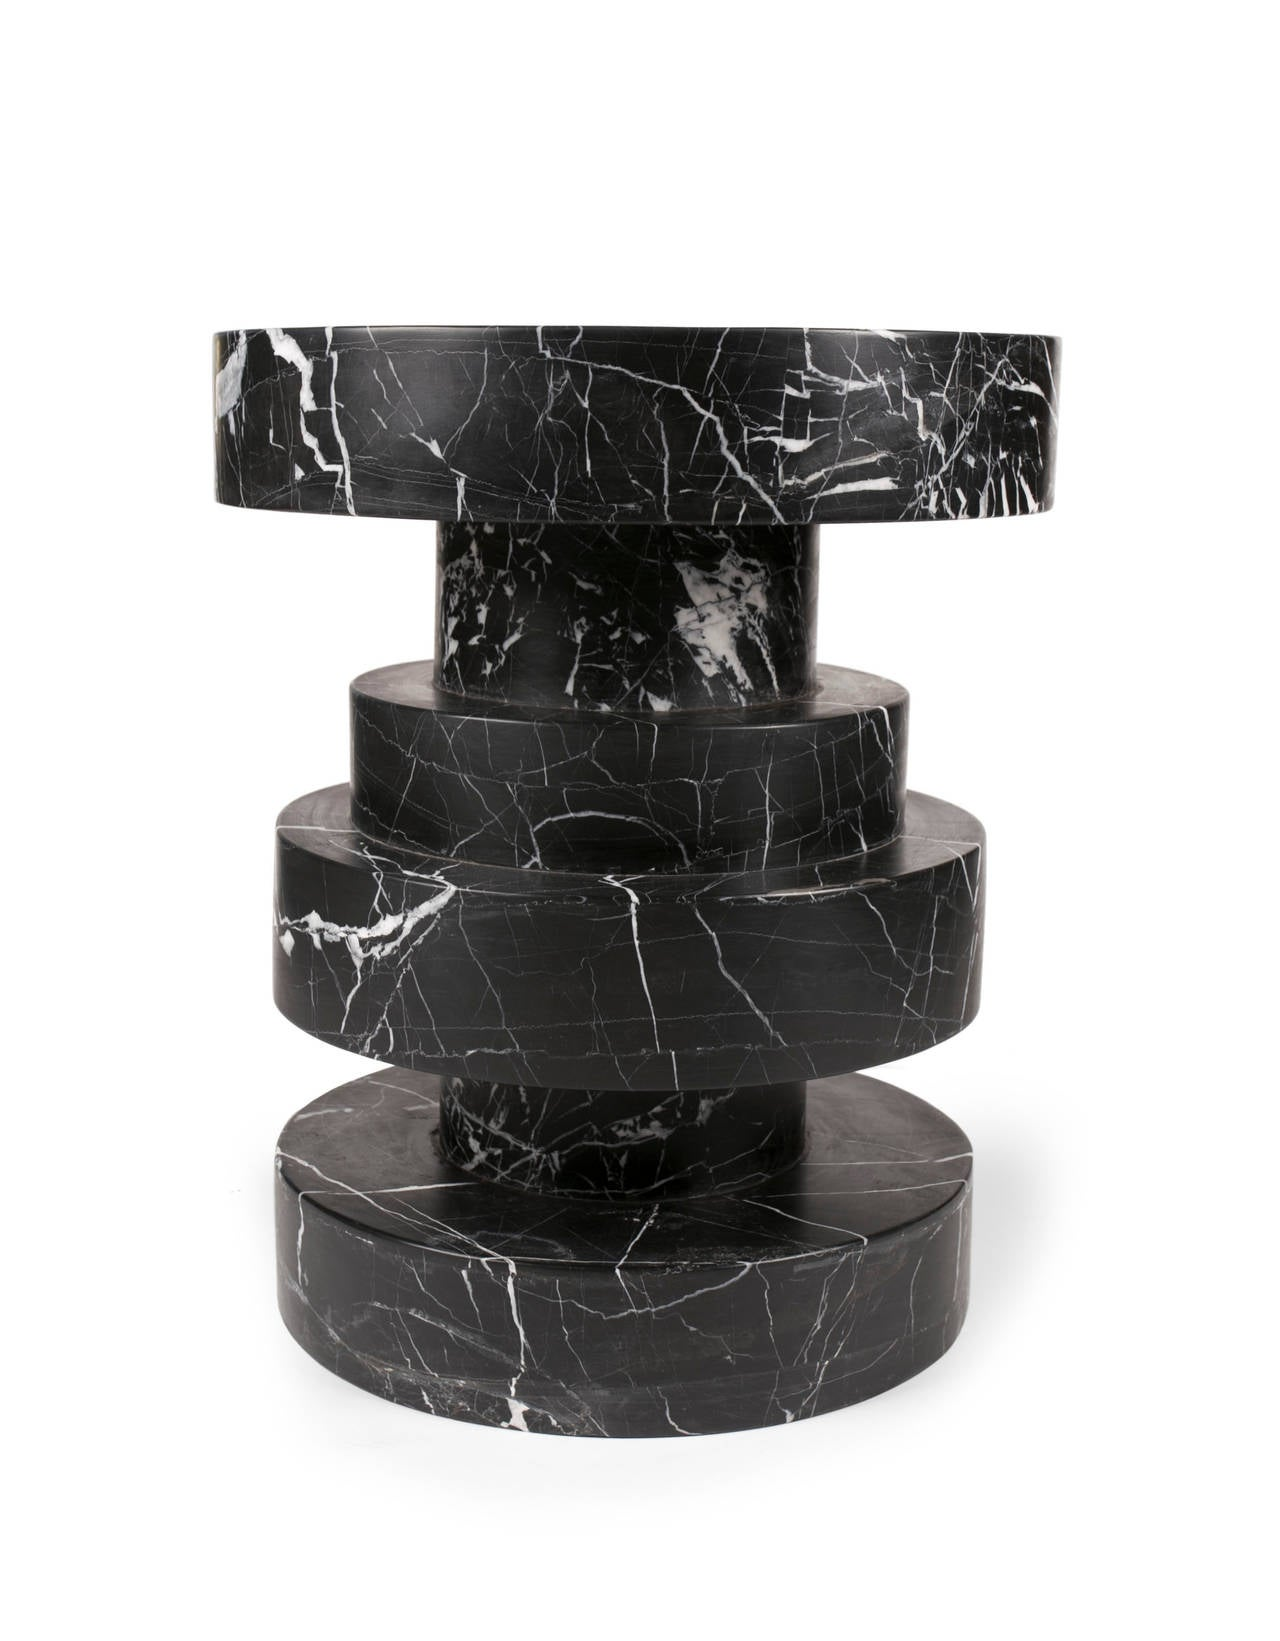 Apollo Stool In Negro Marquina Marble For Sale At 1stdibs